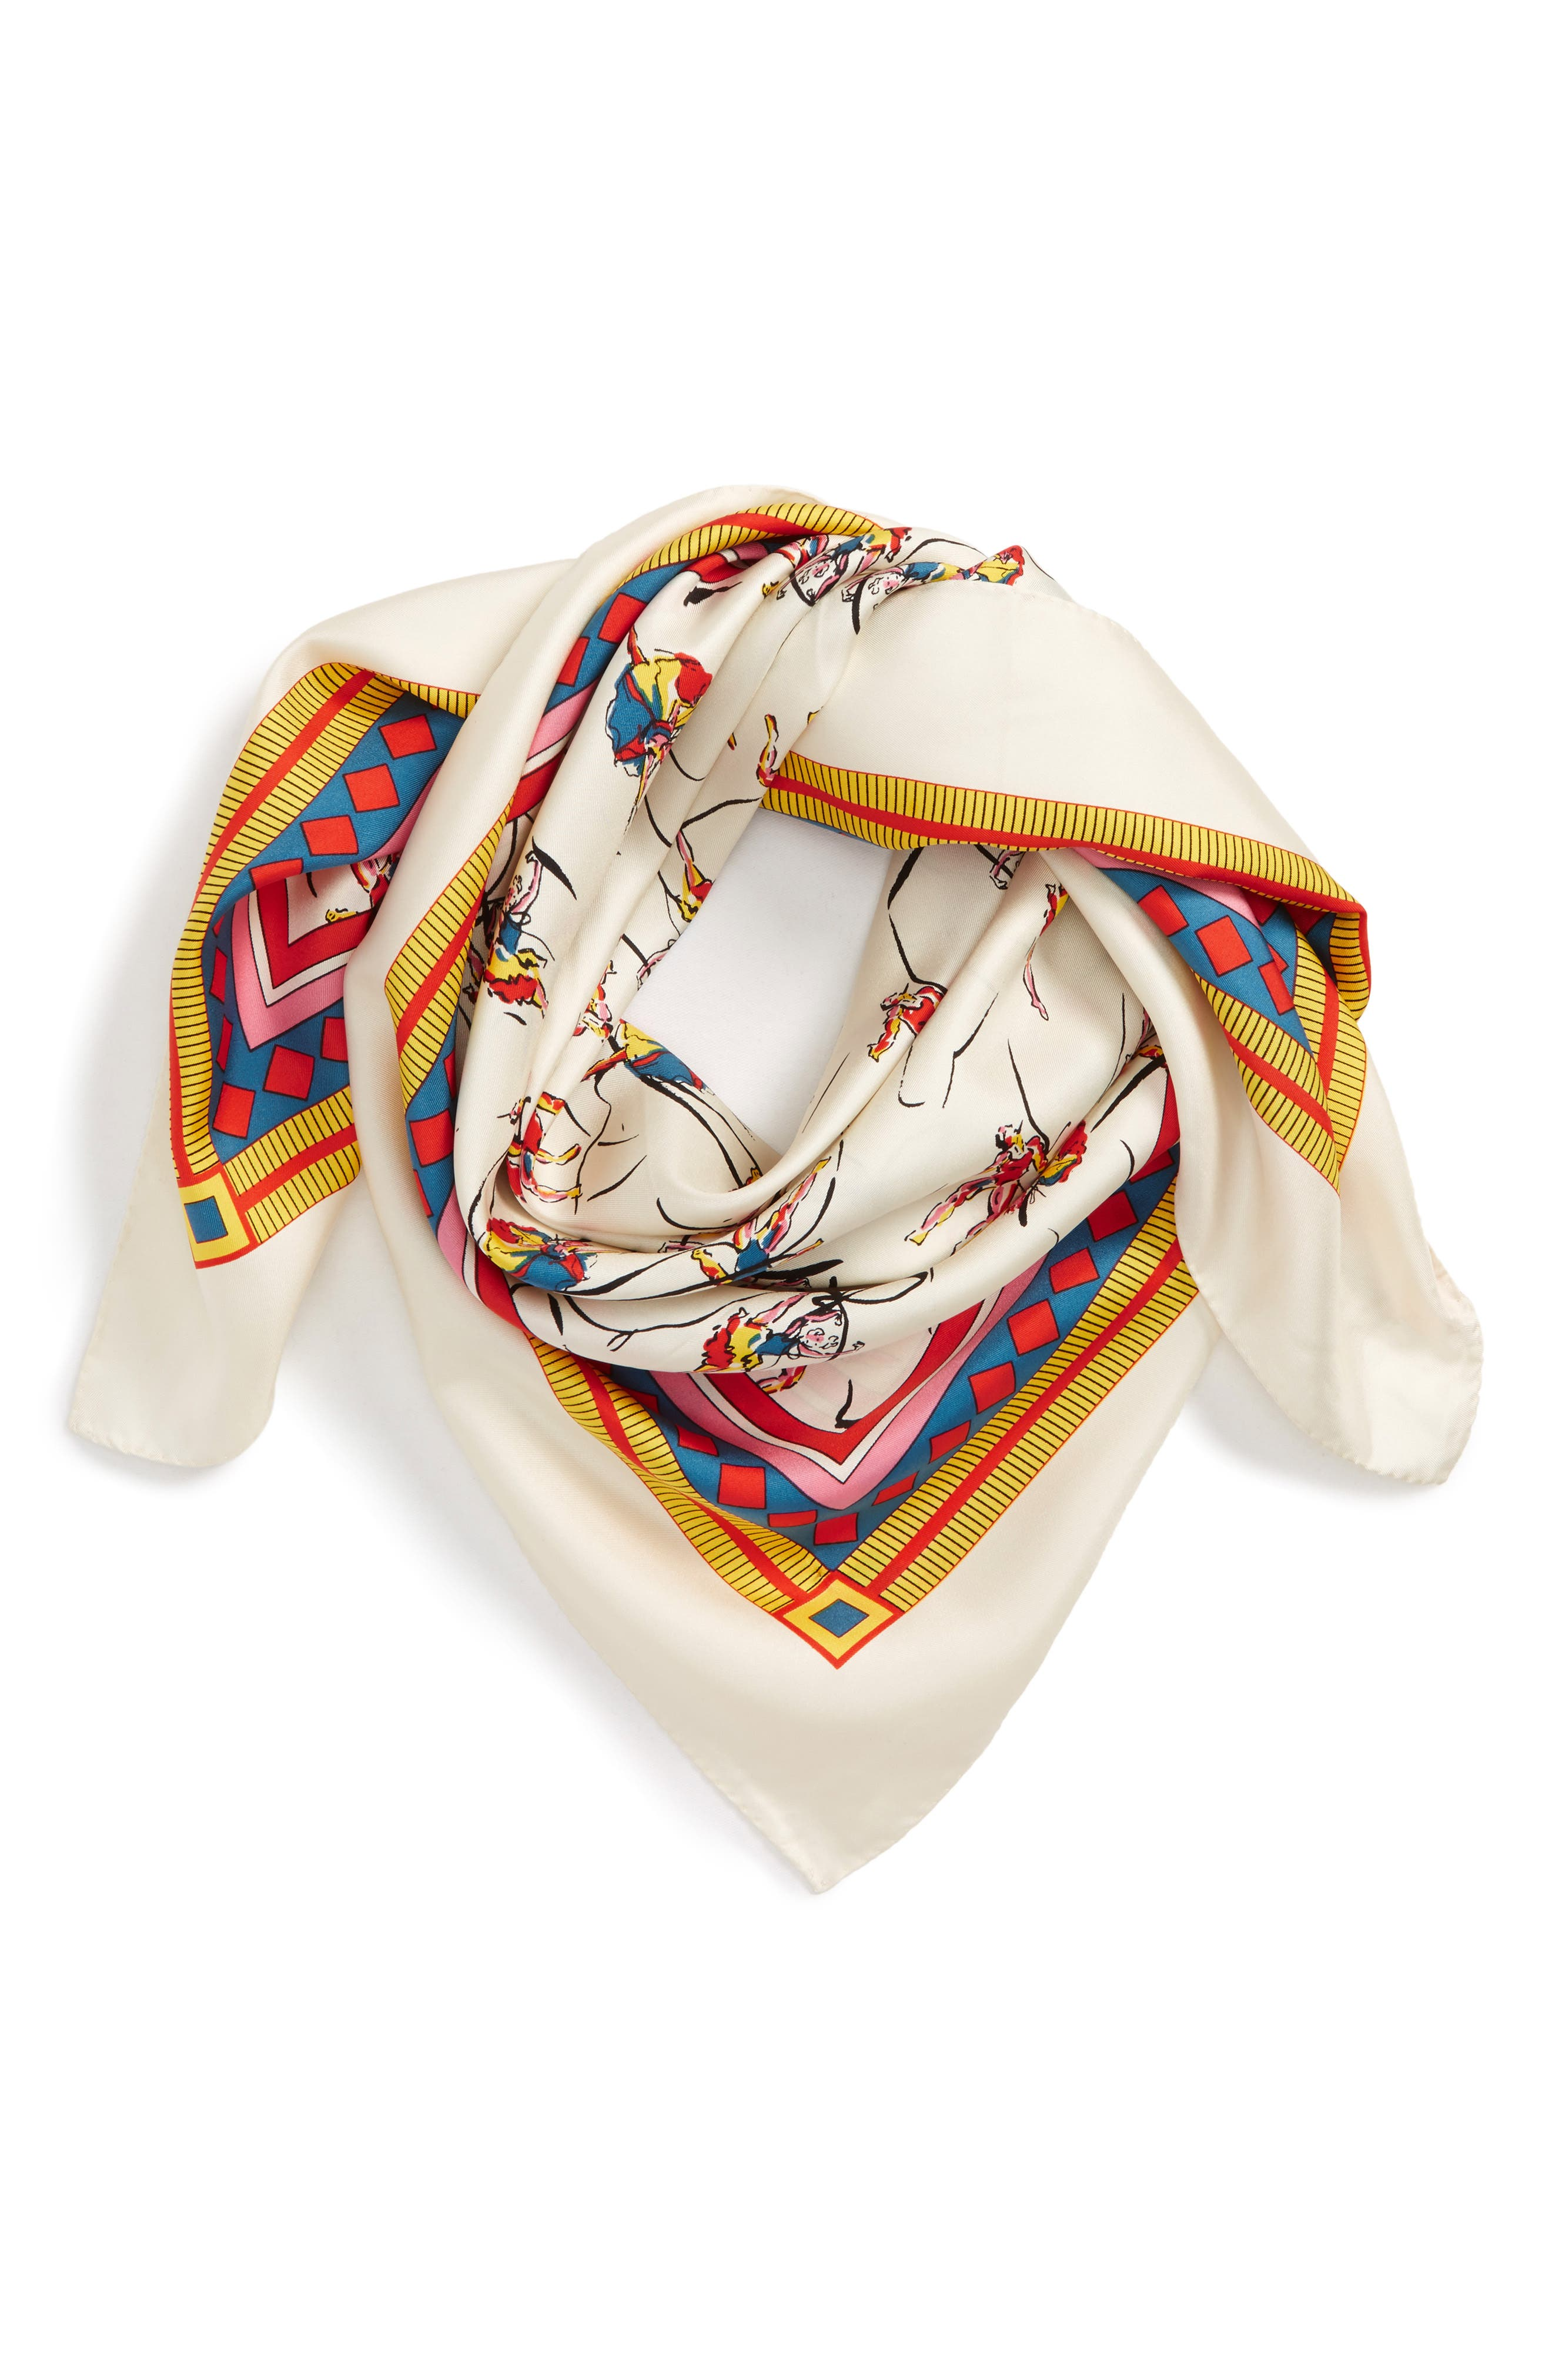 TORY BURCH Dancers Silk Square Scarf, Main, color, 900